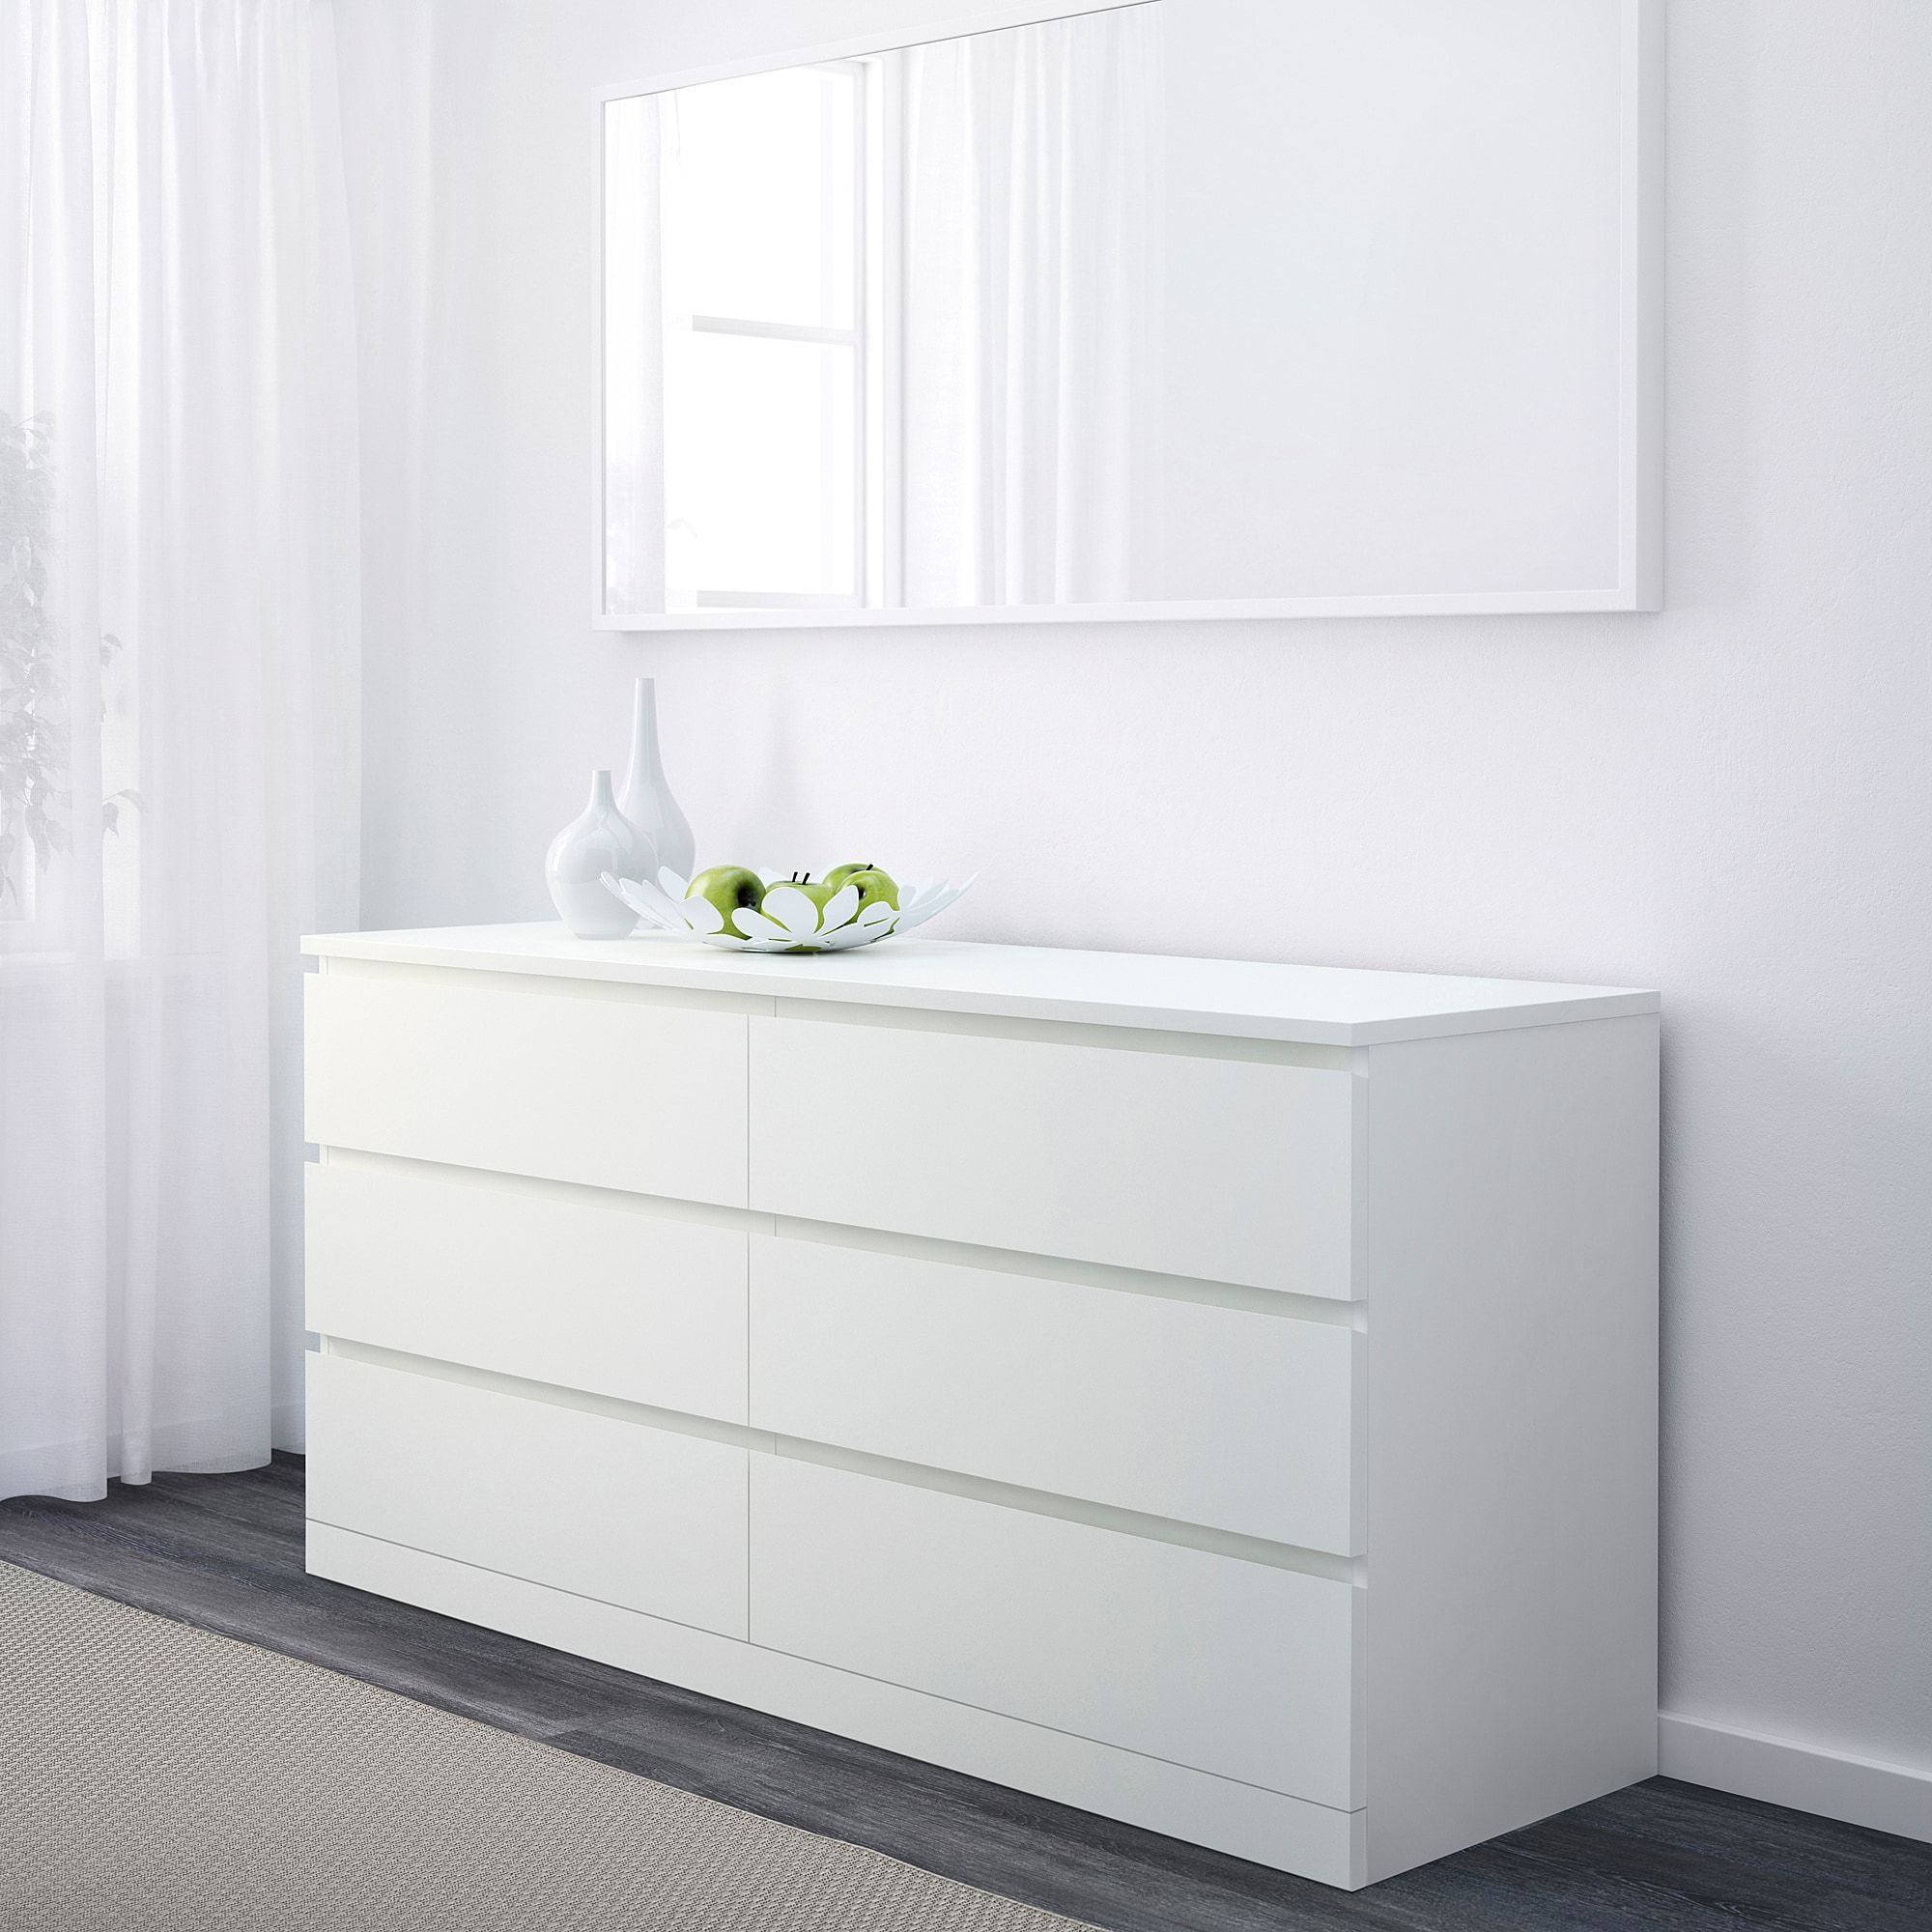 Malm Chest Of 6 Drawers White 160x78 Cm Ikea In 2020 Ikea Bedroom Furniture 6 Drawer Dresser Dresser Drawers